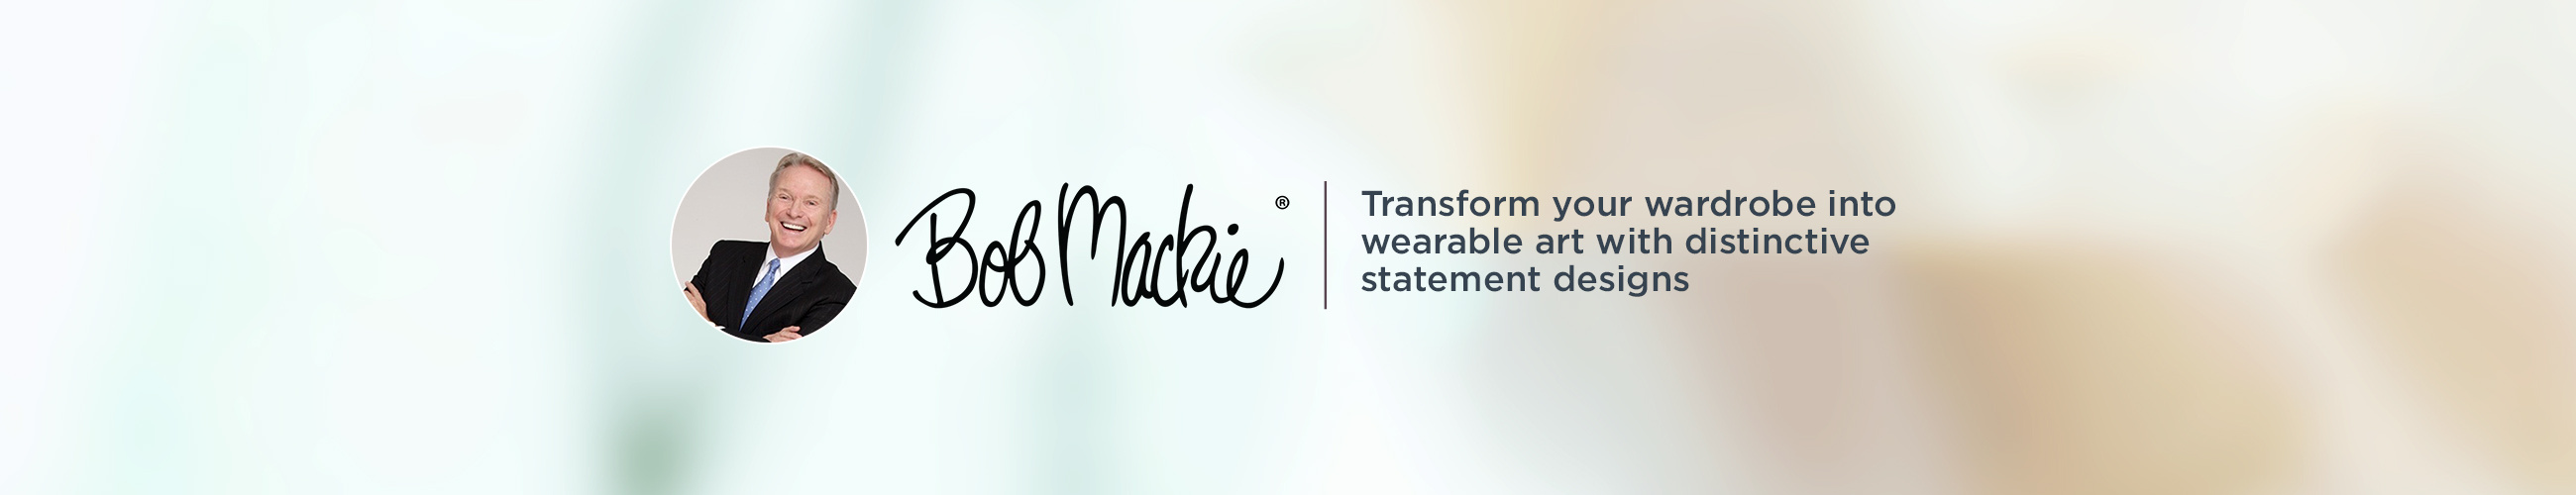 Bob Mackie Transform your wardrobe into wearable art with distinctive statement designs